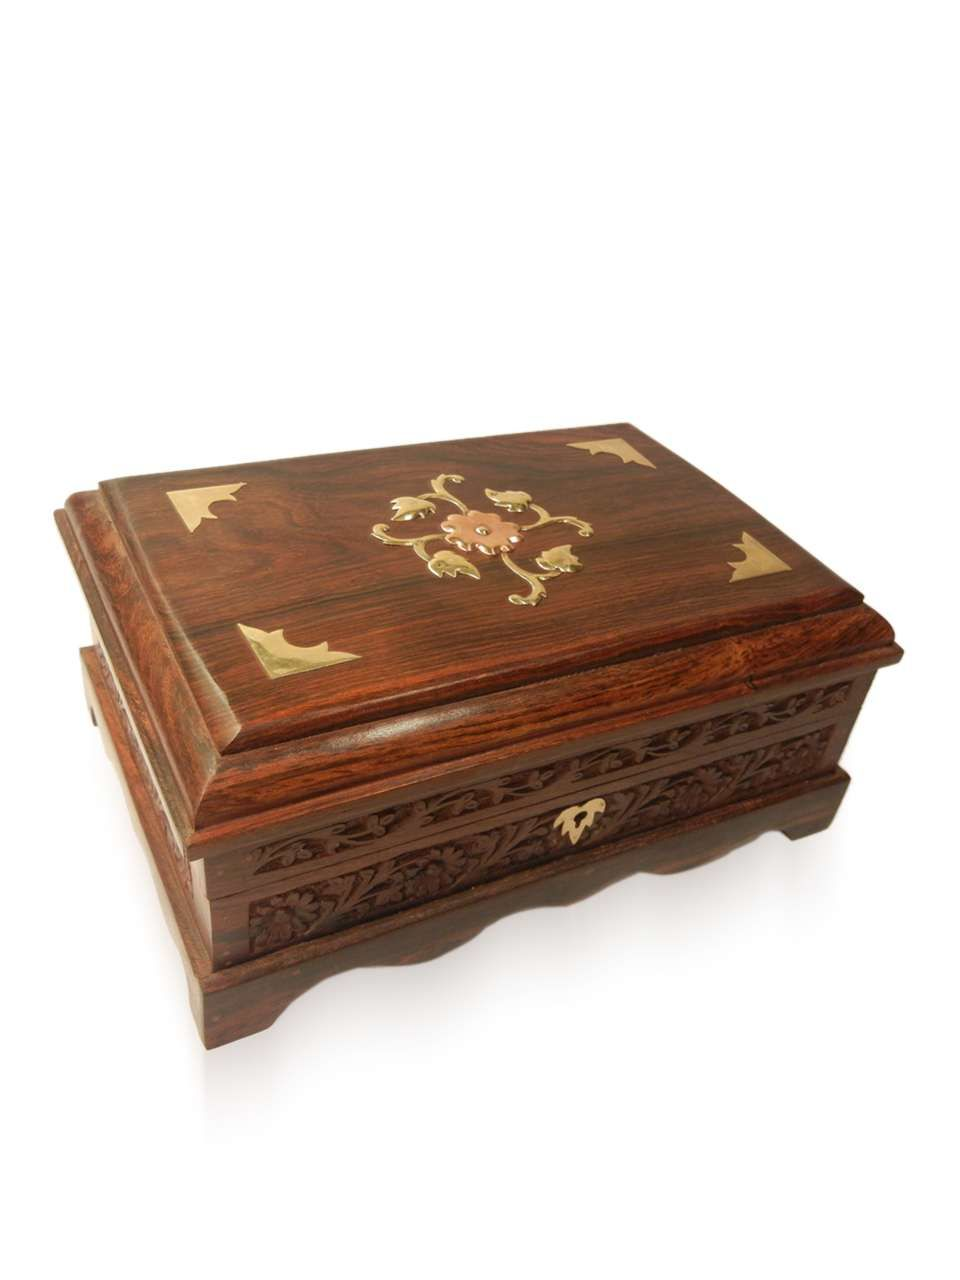 Wooden Antique Brass Work jewellery box - cpwdbojb00020